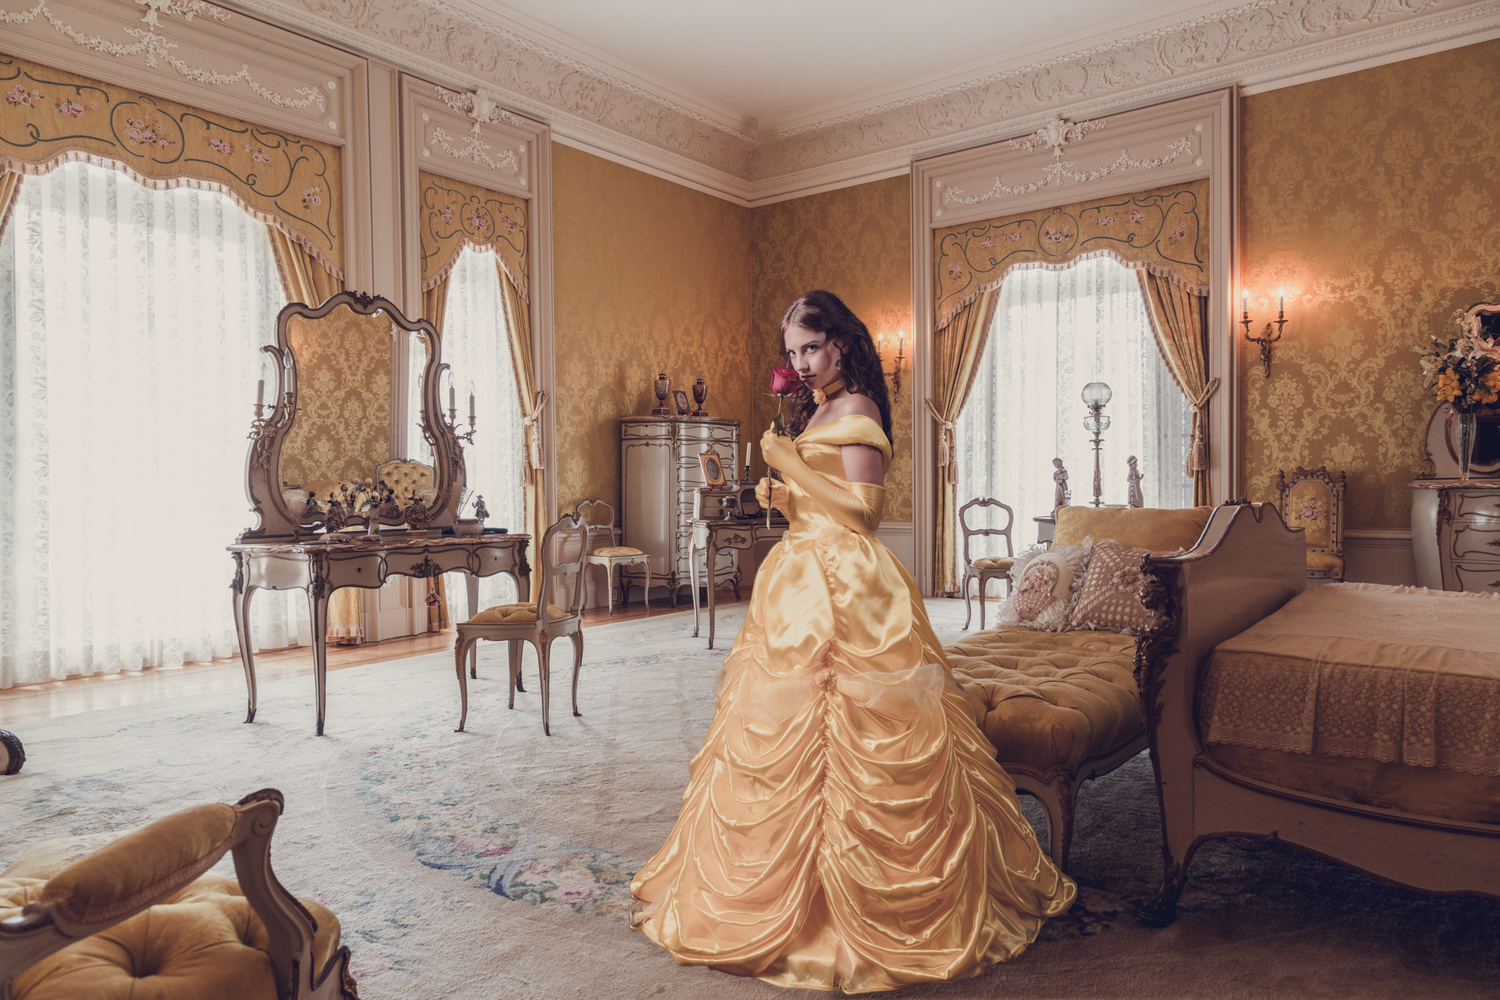 Belle from Beauty and the Beast by Jens Unger